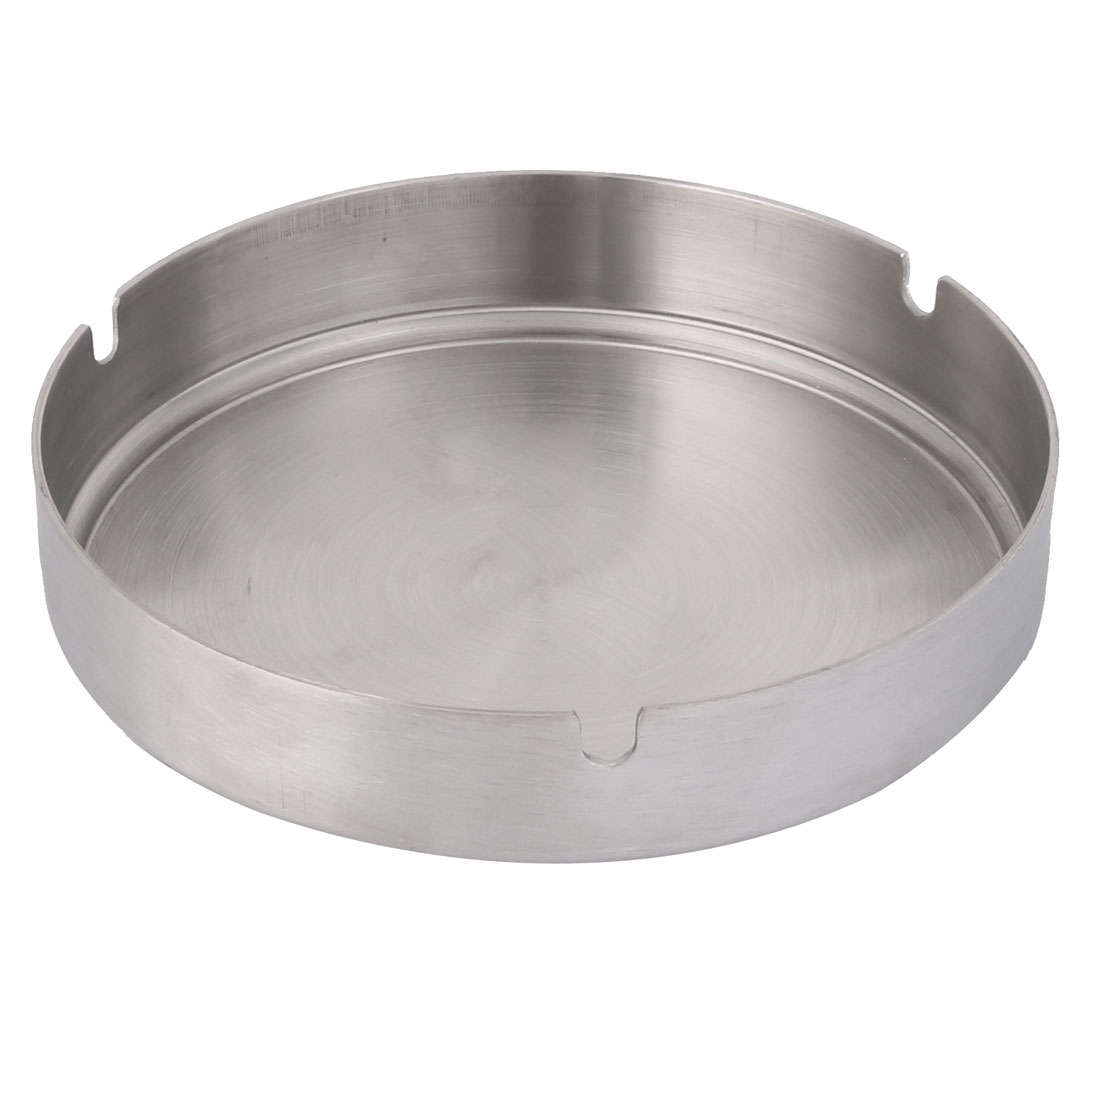 Home Office Metal Cylindrical Shaped Cigarette Holder Ashtray 14cm Dia